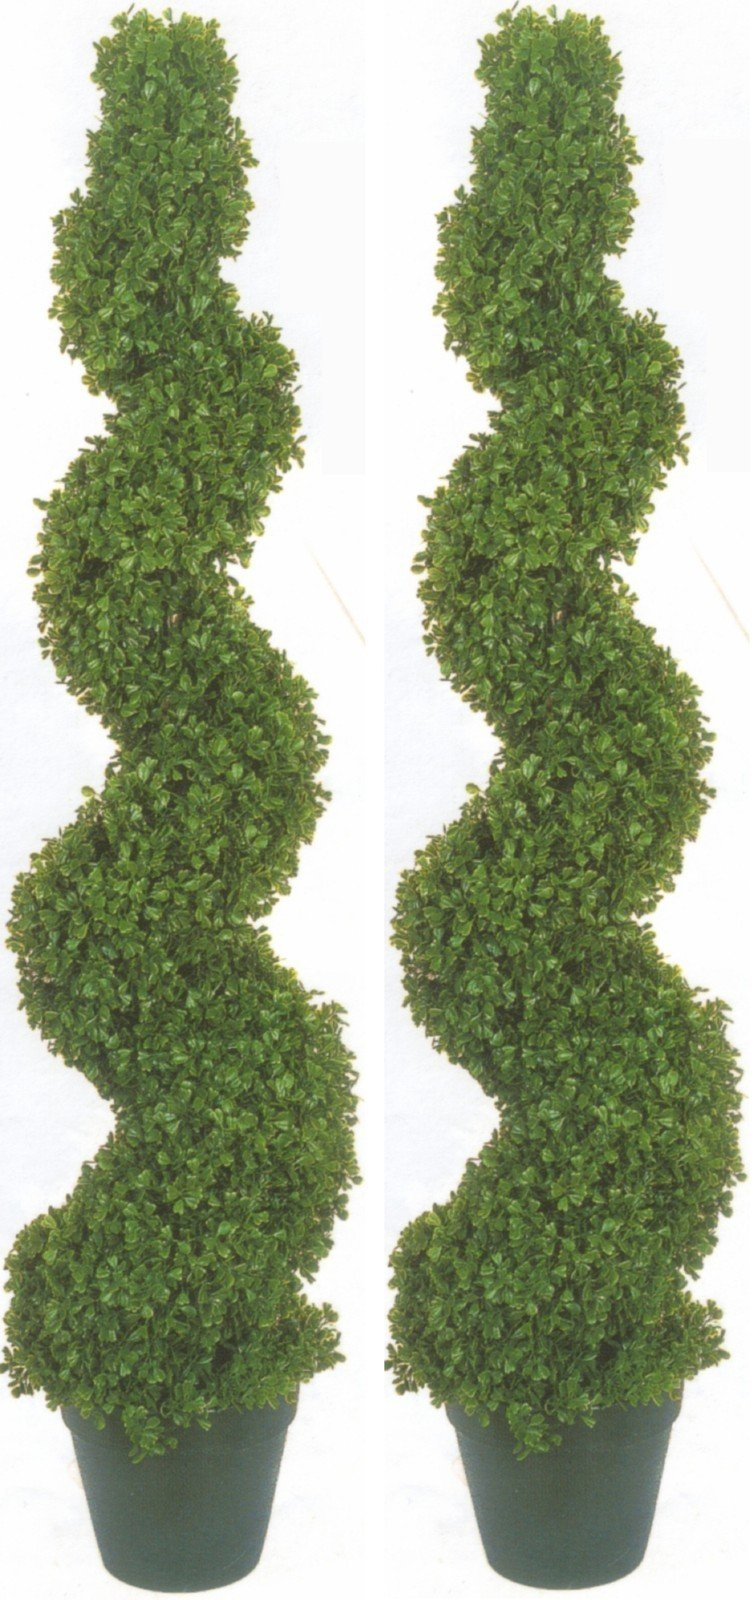 Two 4 Foot 2 Inch Artificial Boxwood Spiral Topiary Trees Potted Indoor or Outdoor